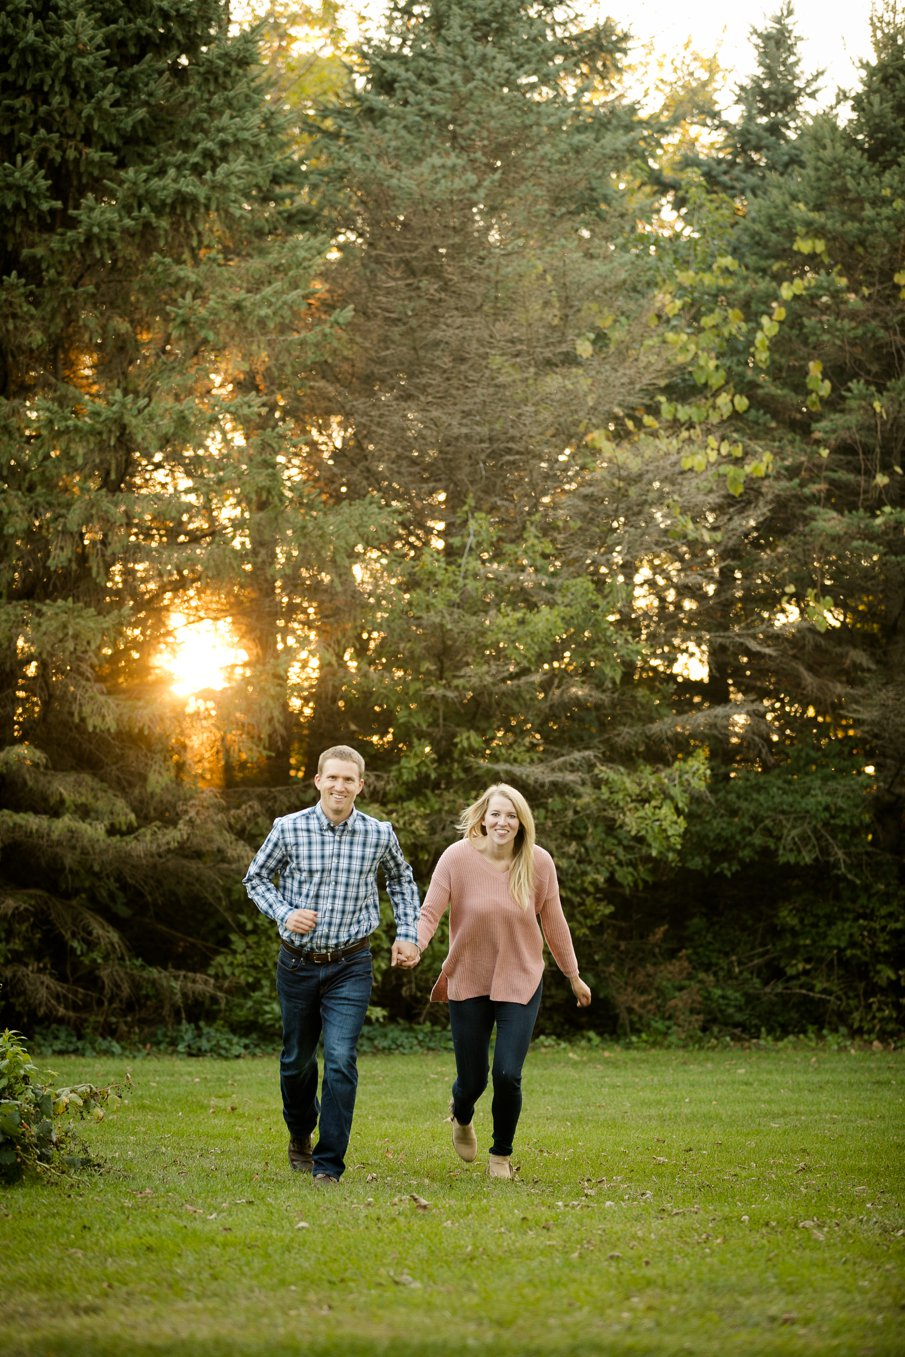 Alice Hq Photography  - Cyndi + Matt | Belle Plaine Engagment 12.jpg